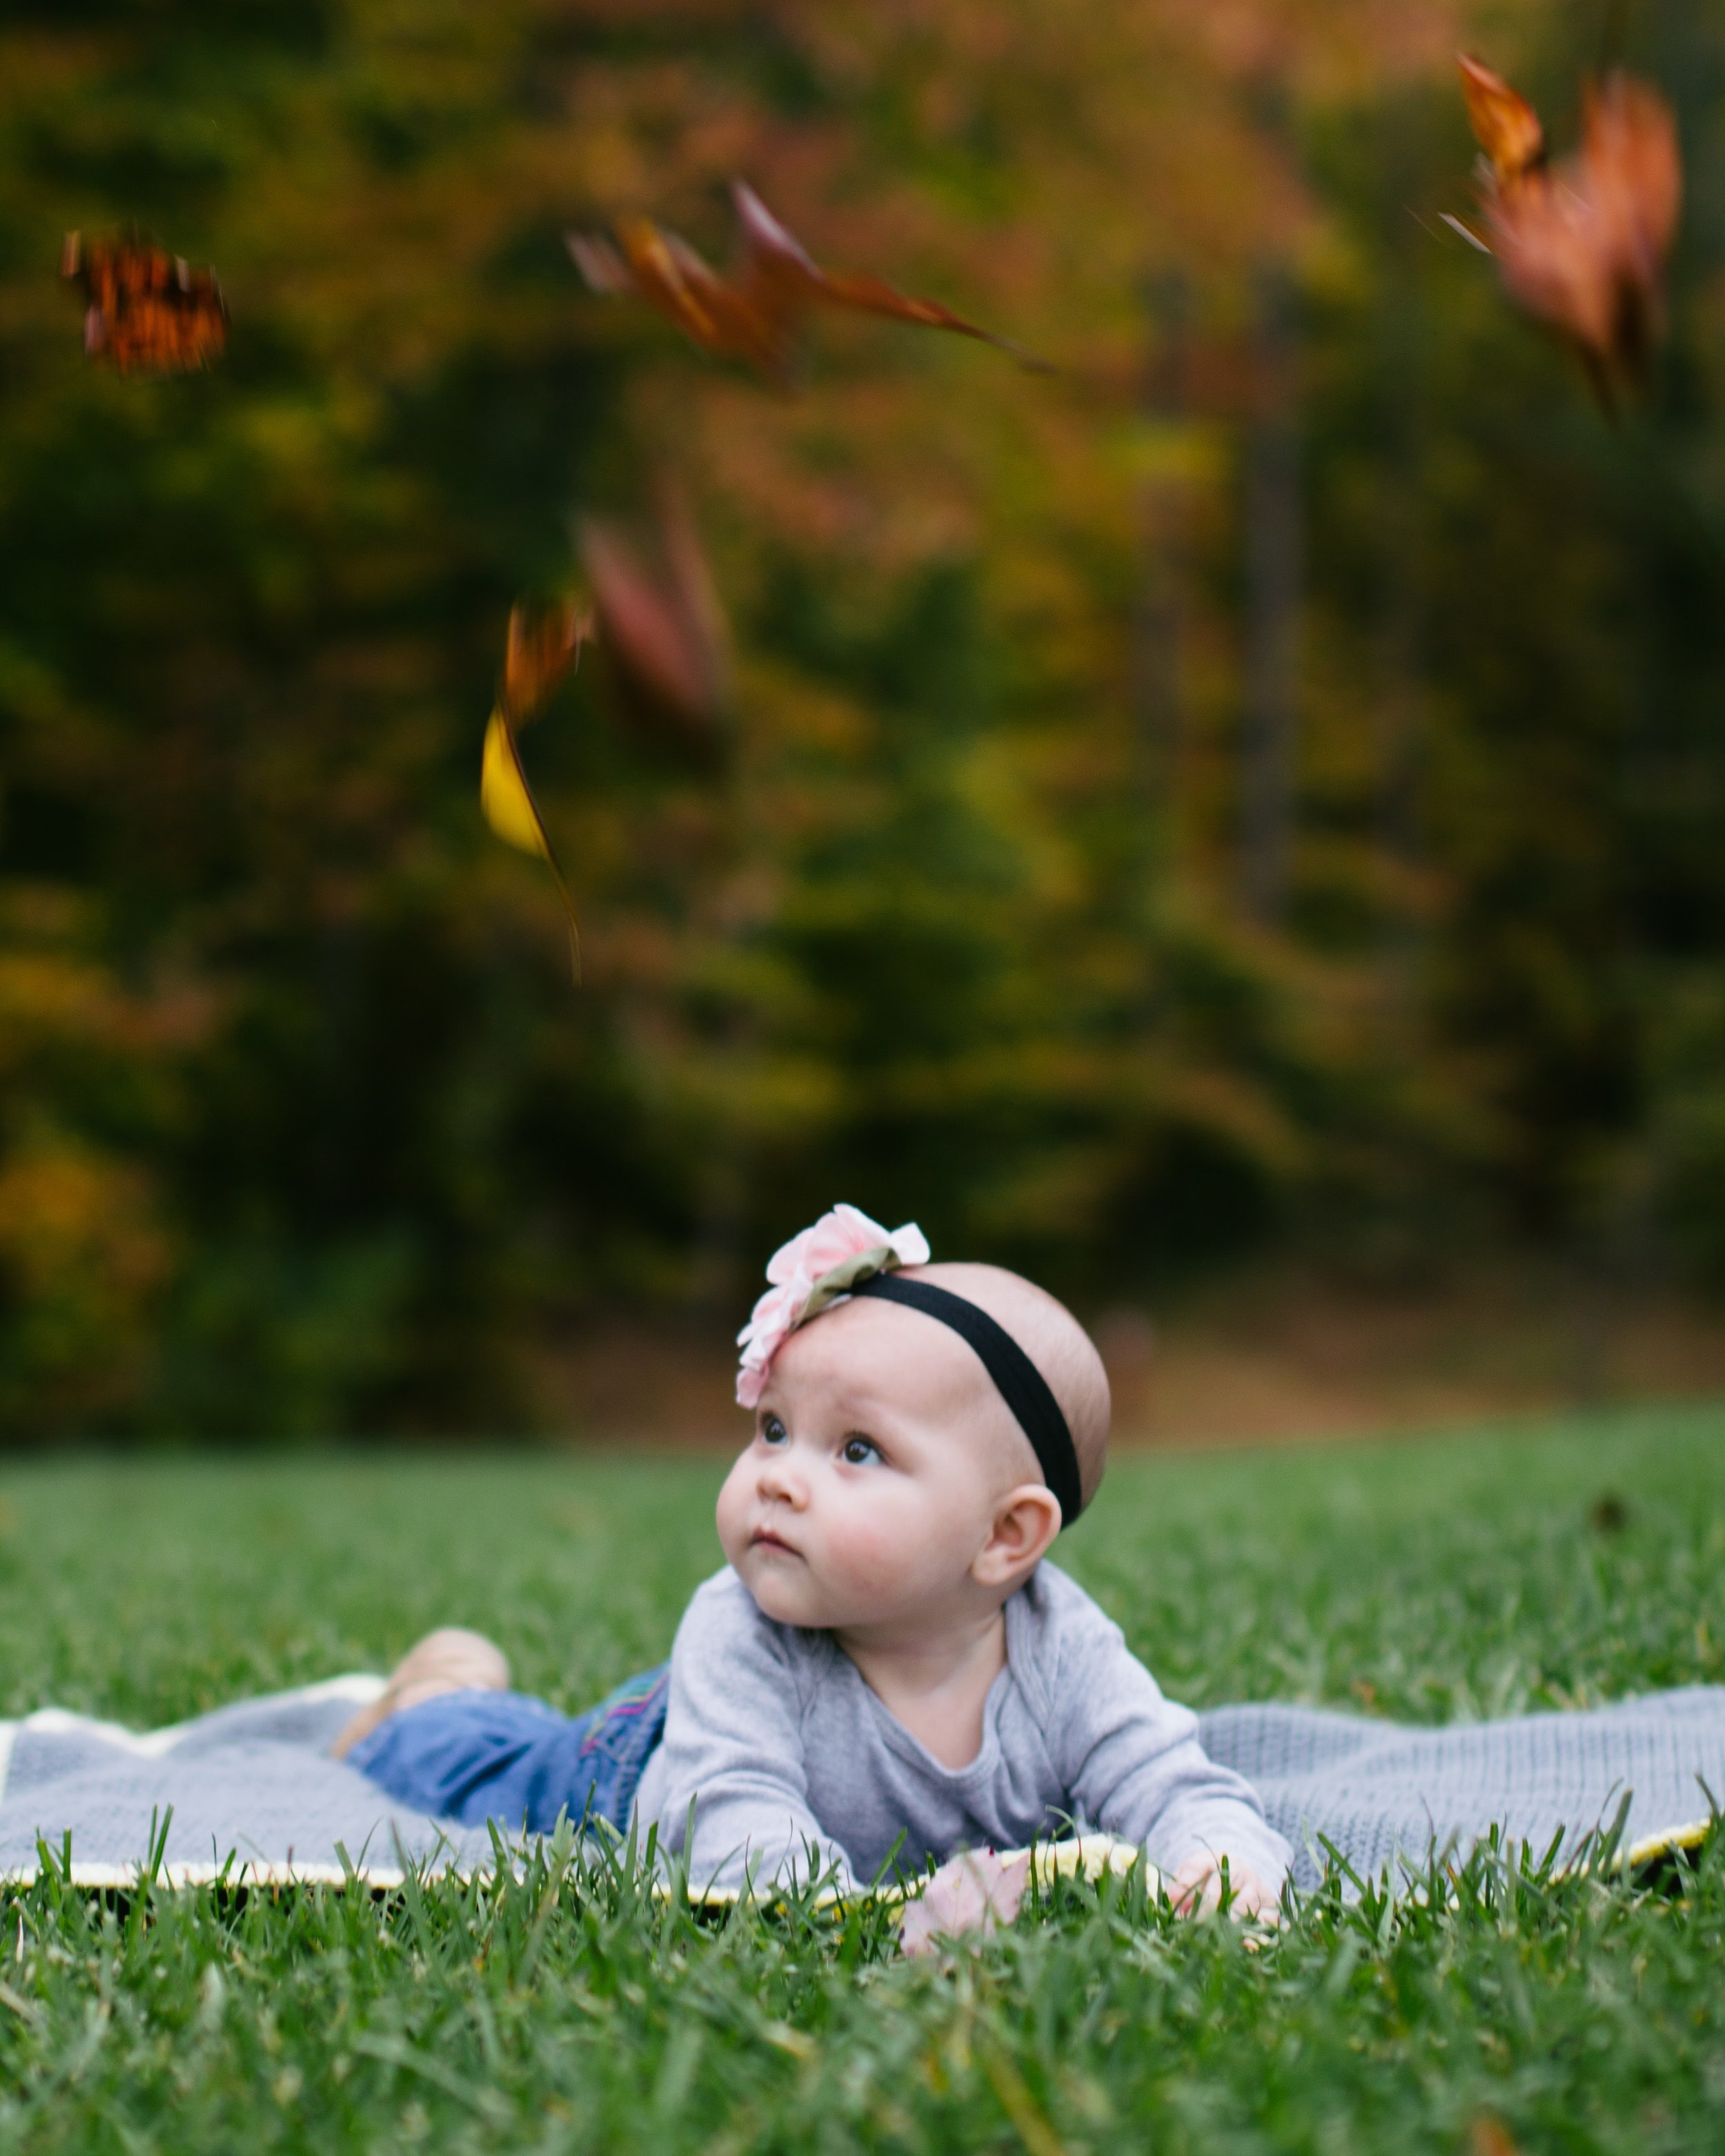 Kind of like this adorable fall photo of leaves falling on this adorable little human